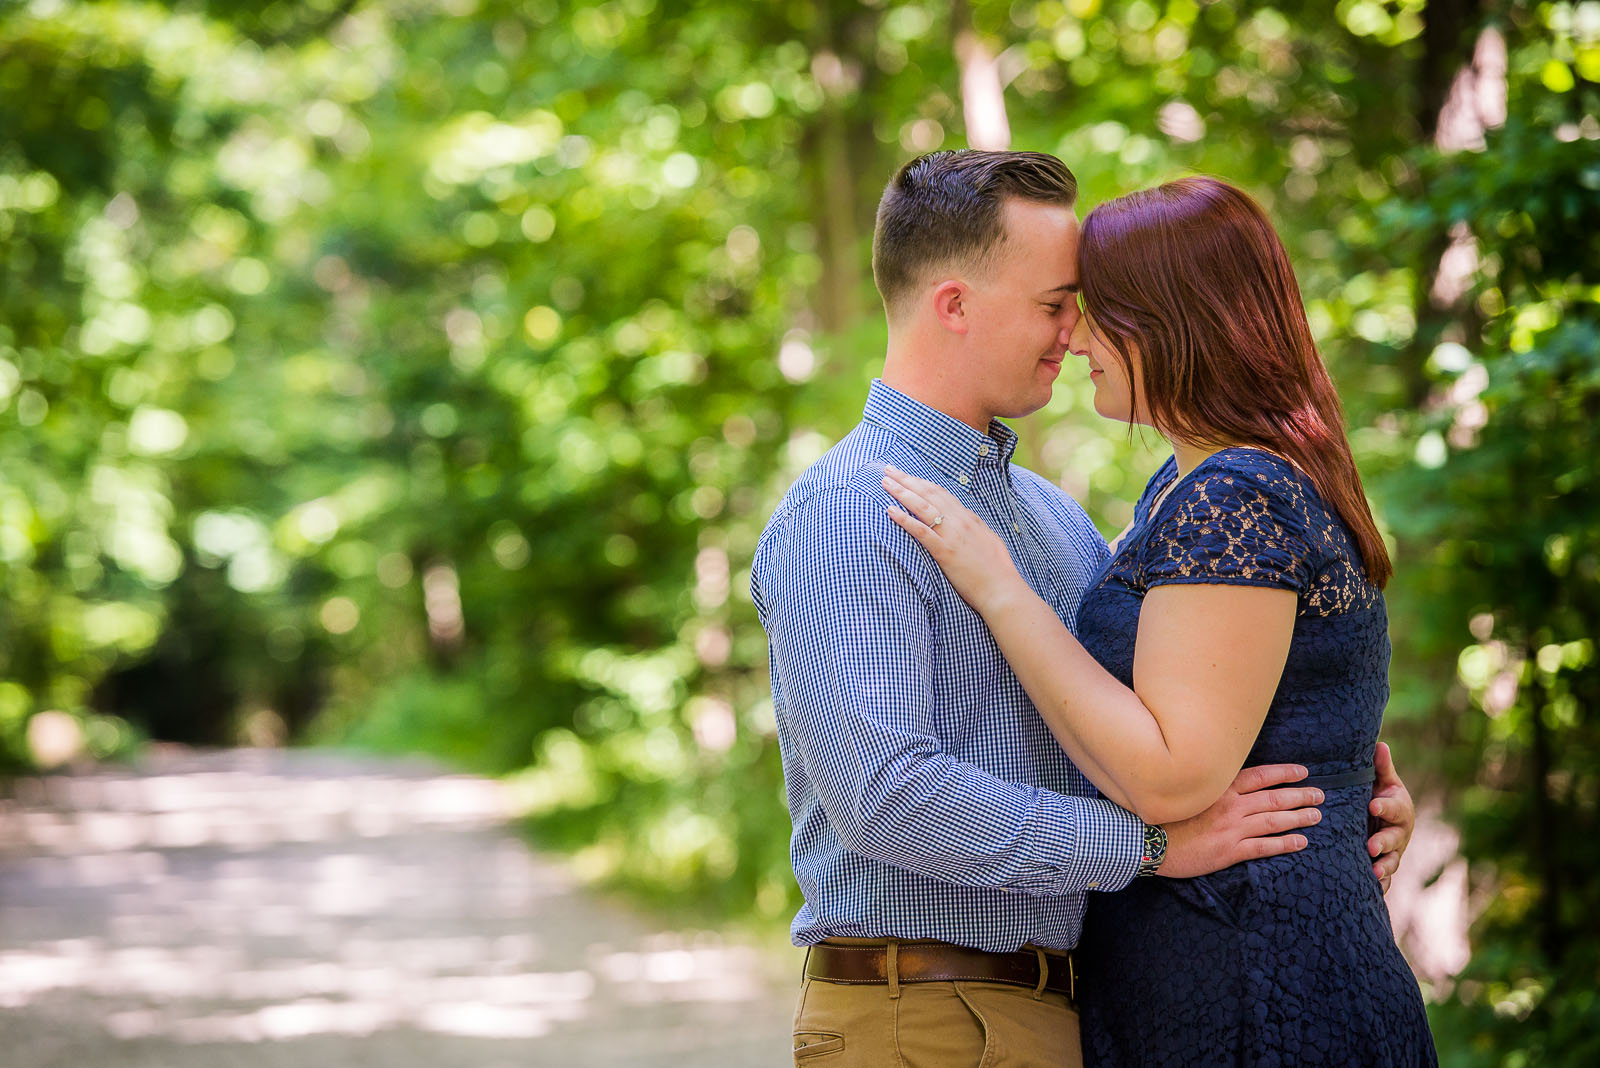 Eric_and_Christy_Photography_Blog_2017_Best_Engagement-18